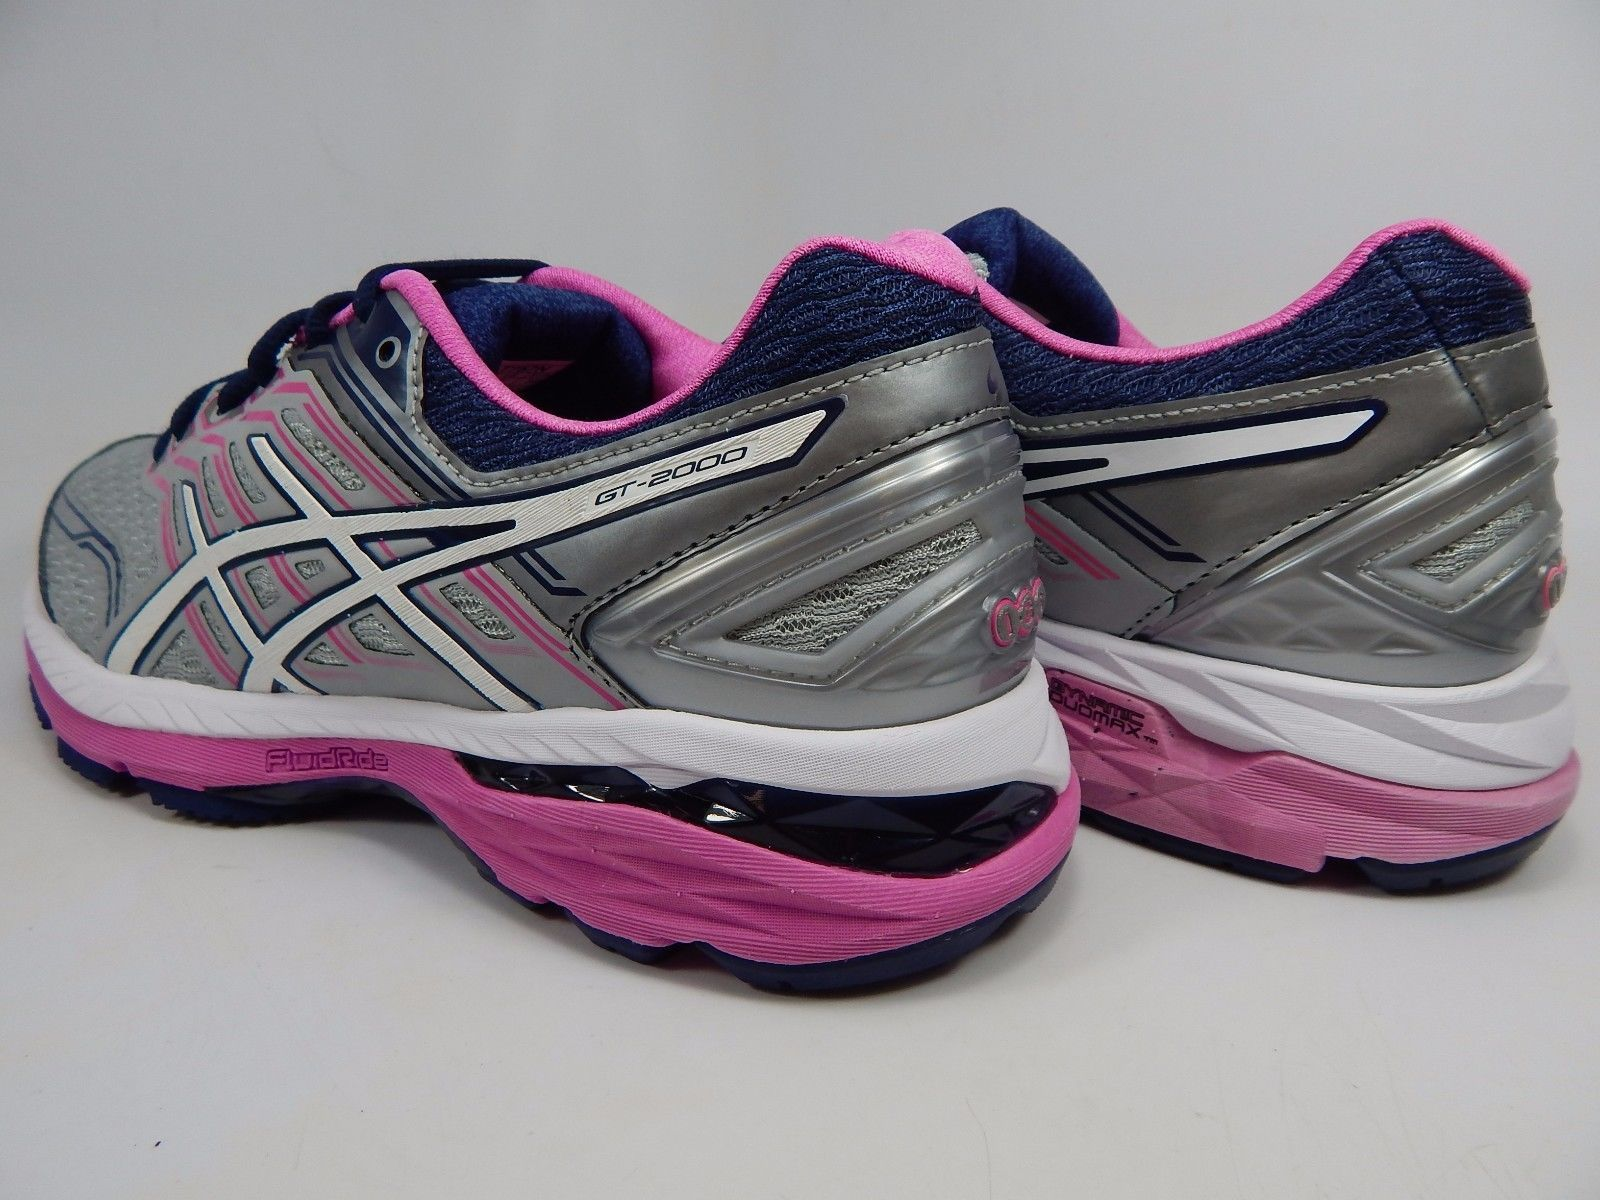 Asics GT 2000 v 5 Women's Running Shoes Size US 7 M (B) EU 38 Silver T757N